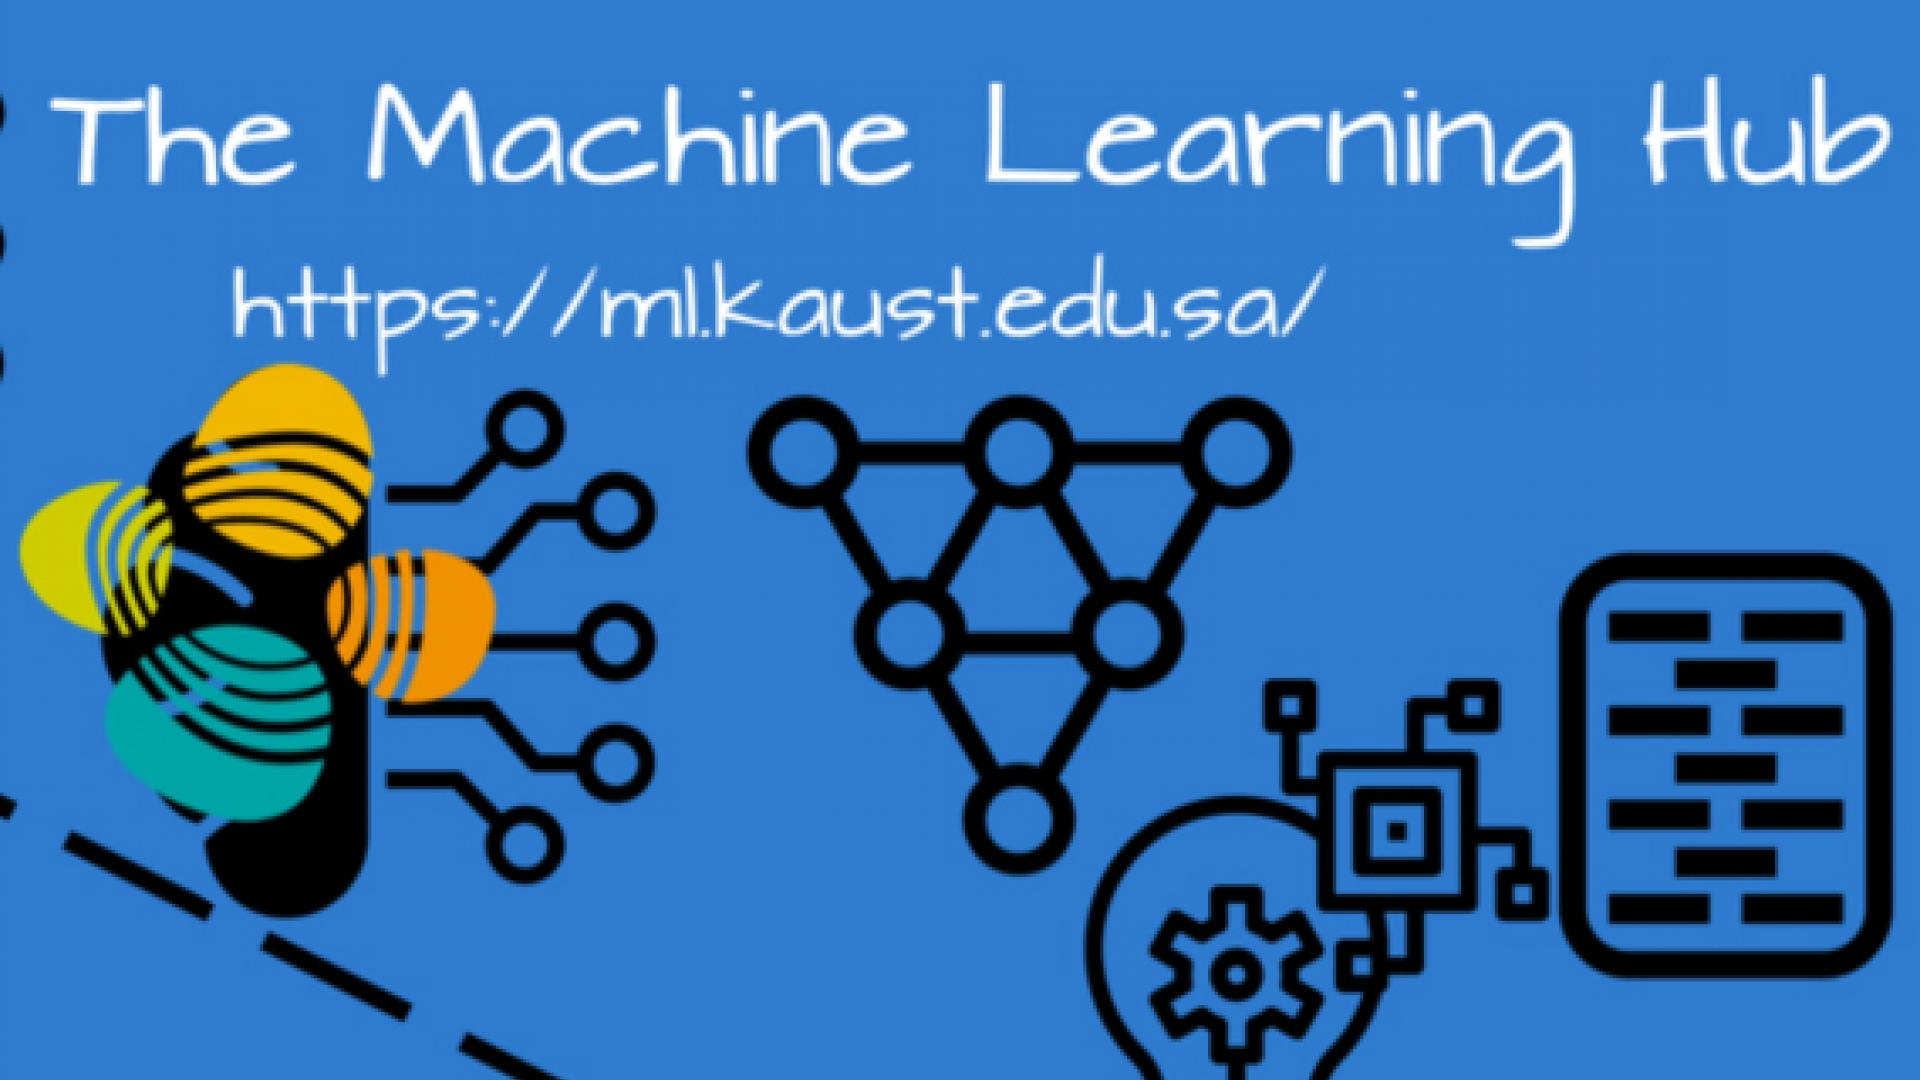 The Machine Learning Hub Seminar